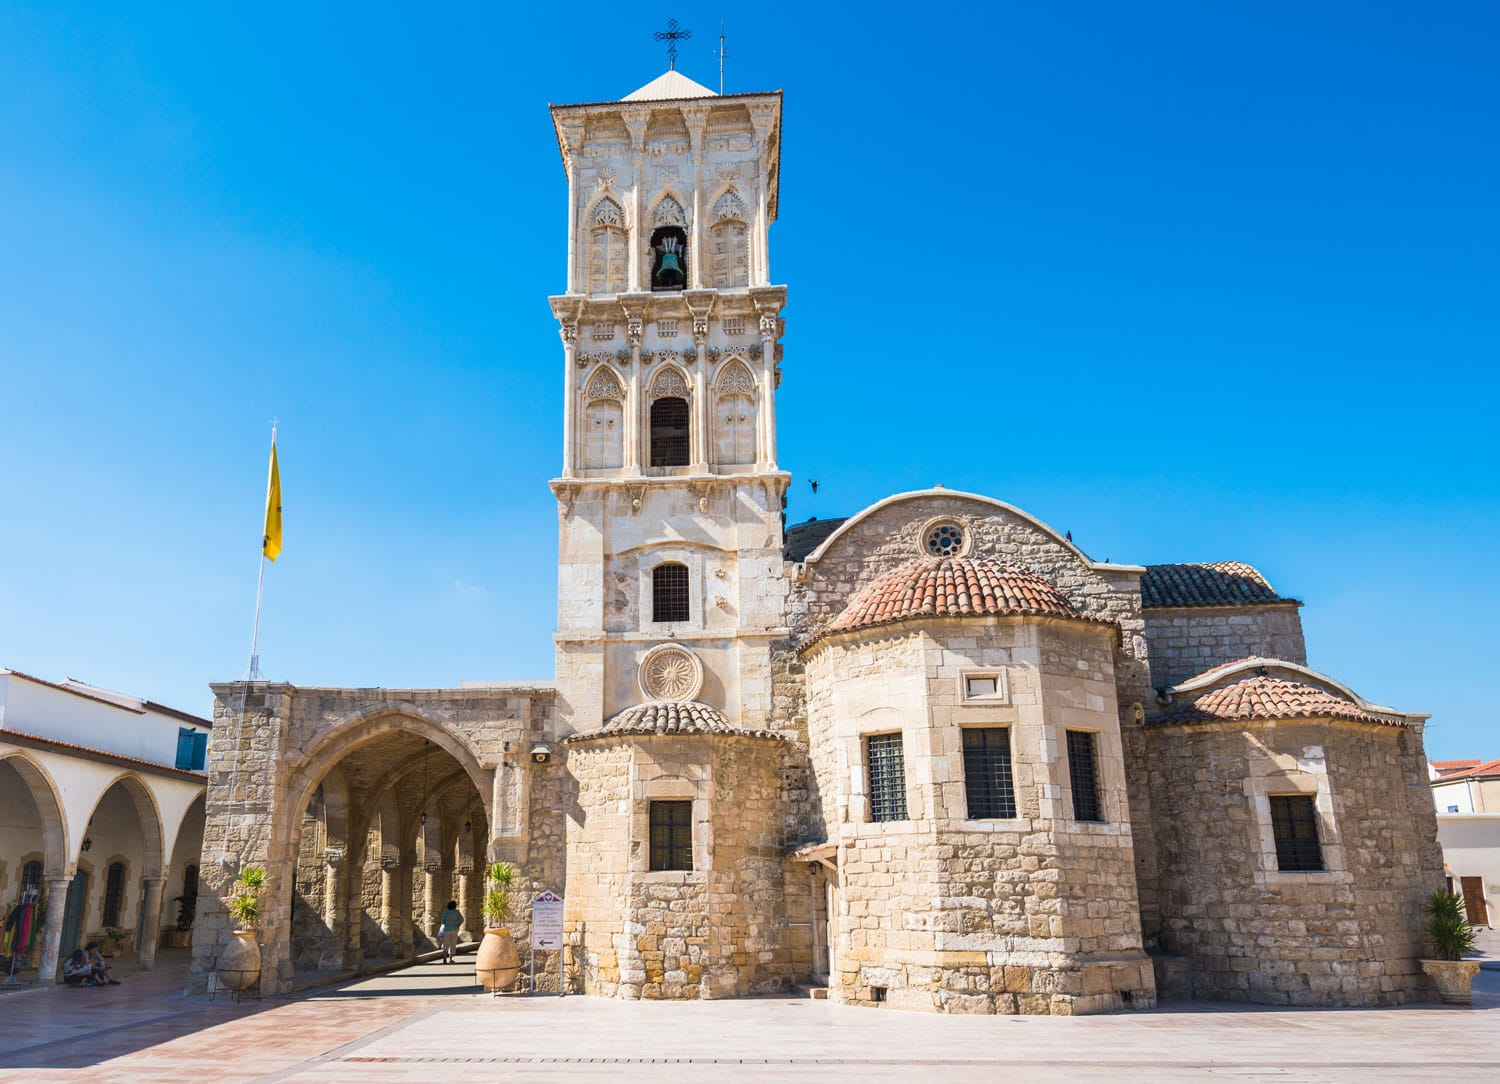 Orthodox church of Saint Lazarus in Larnaca, Cyprus sunny facade with beautiful decorations and blue sky background with soft focus